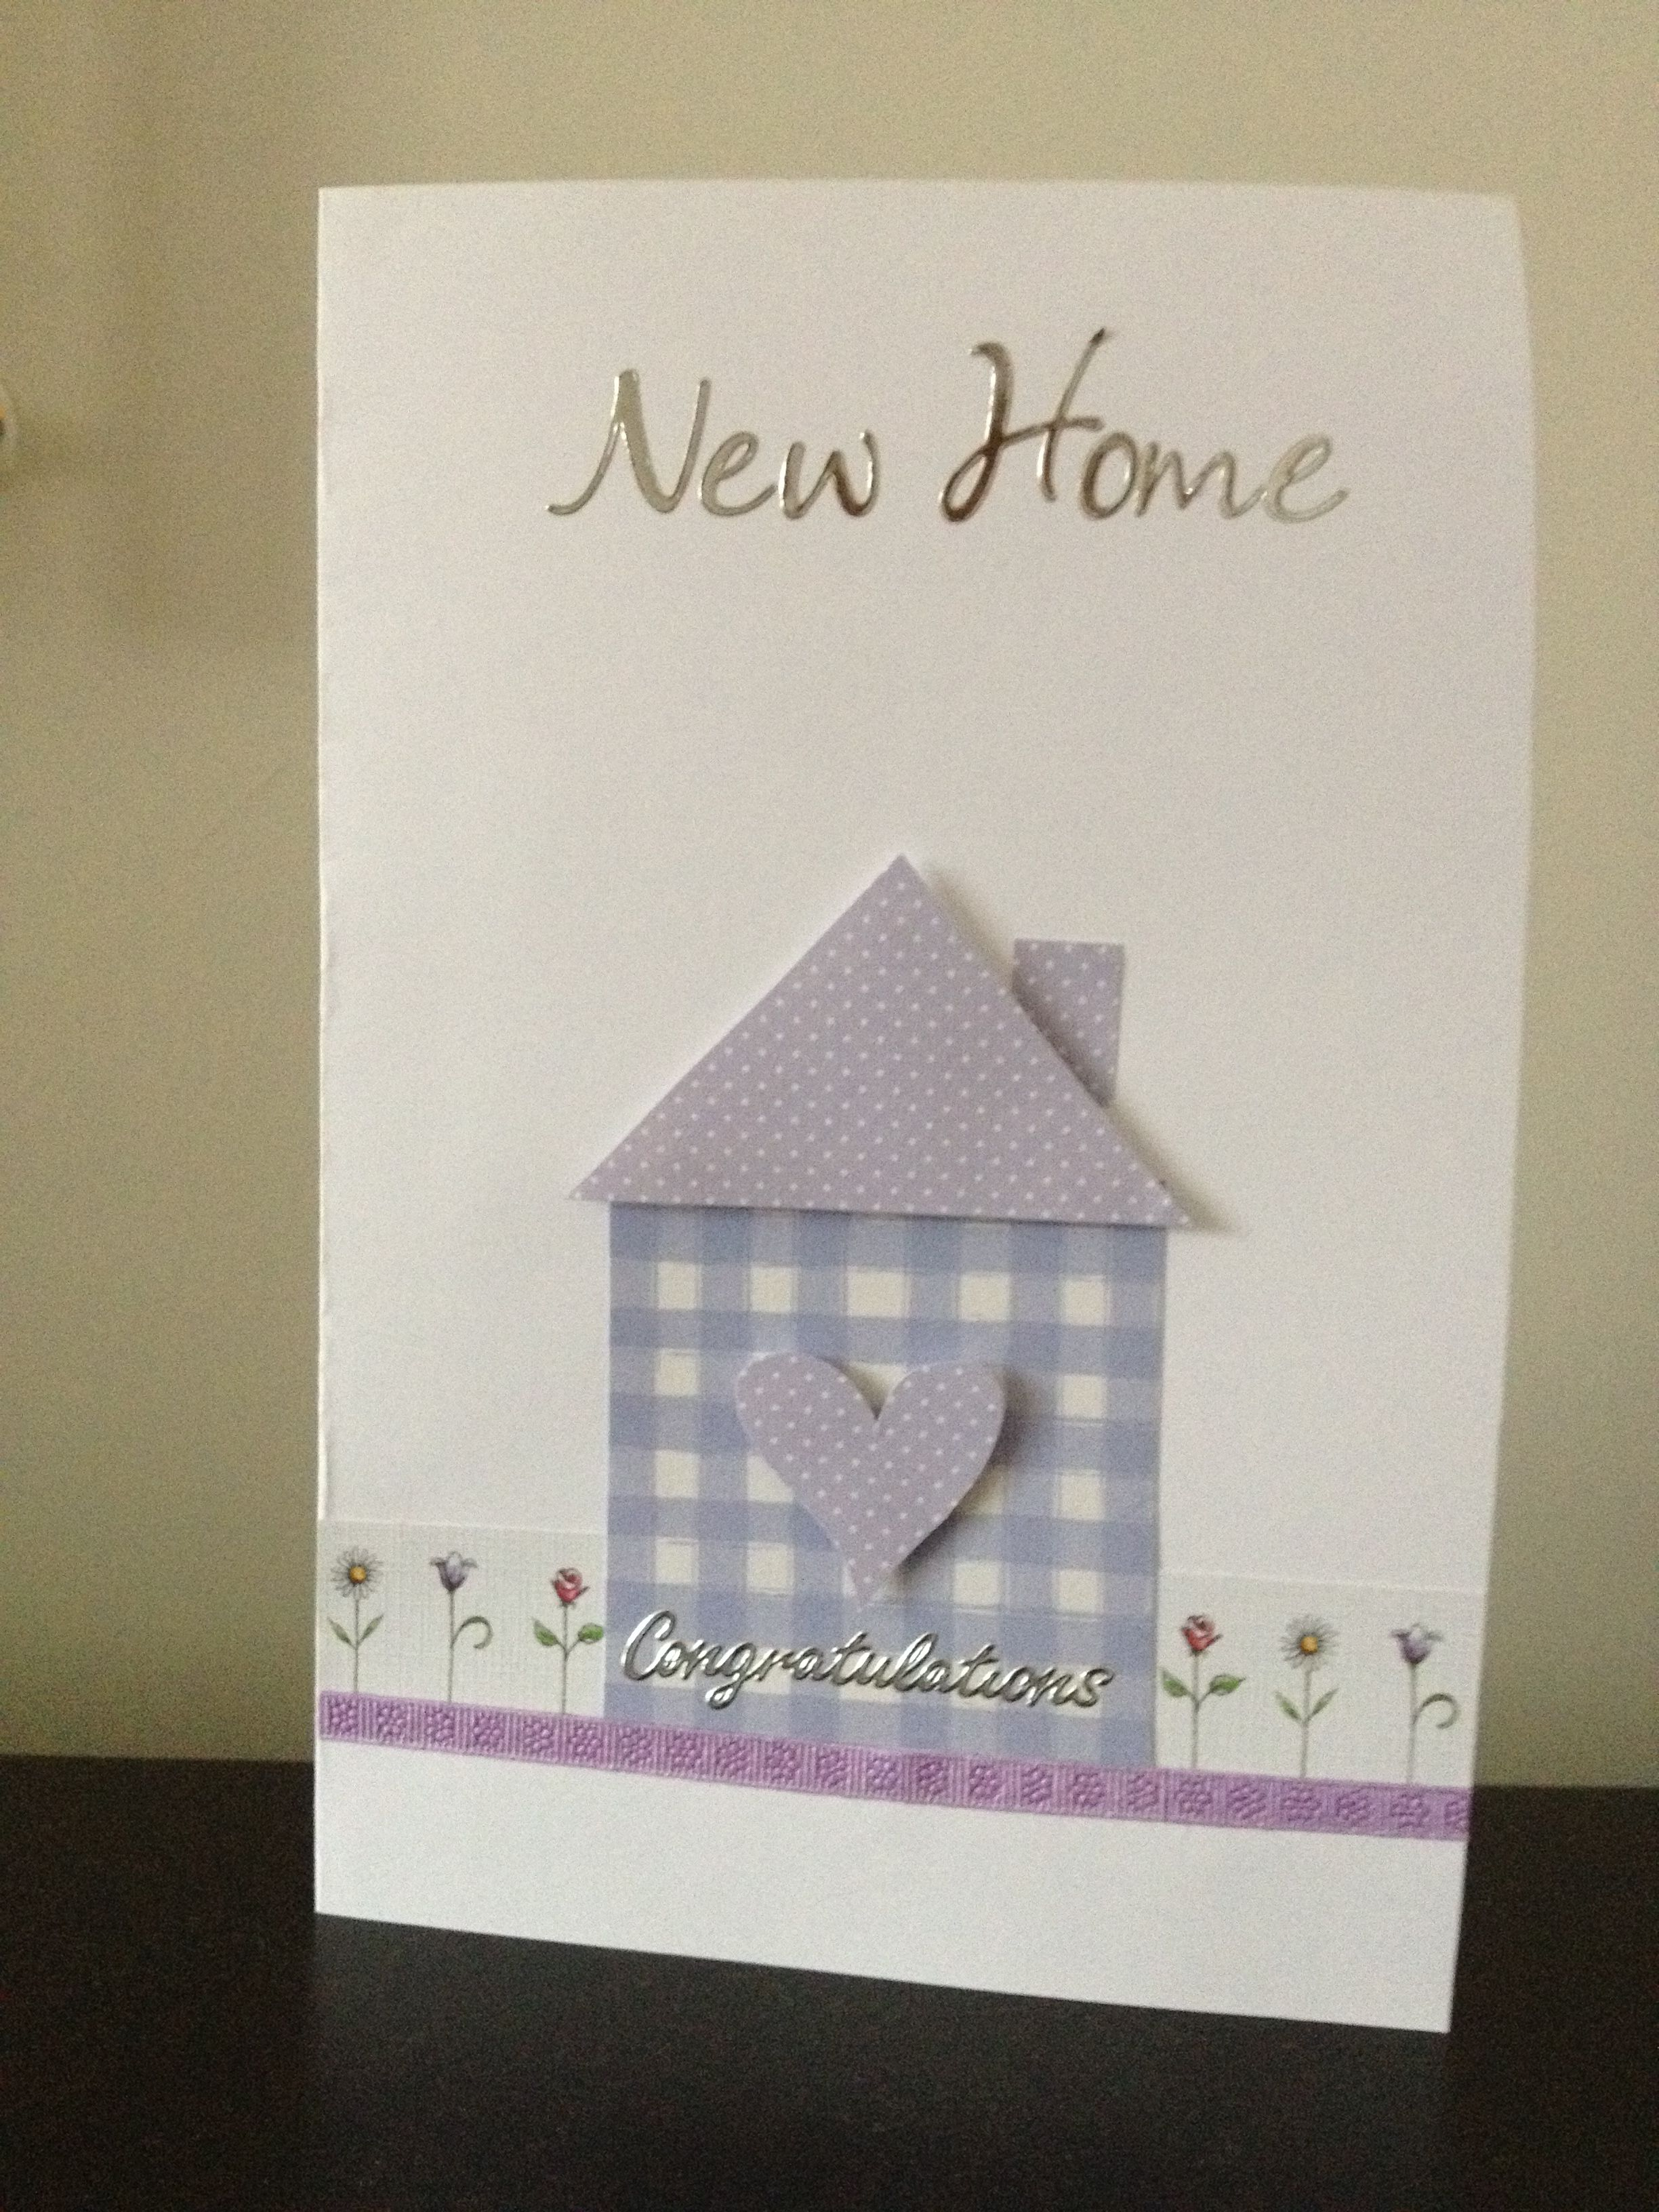 New Home Card Cards Pinterest Cards Card Ideas And House Cards